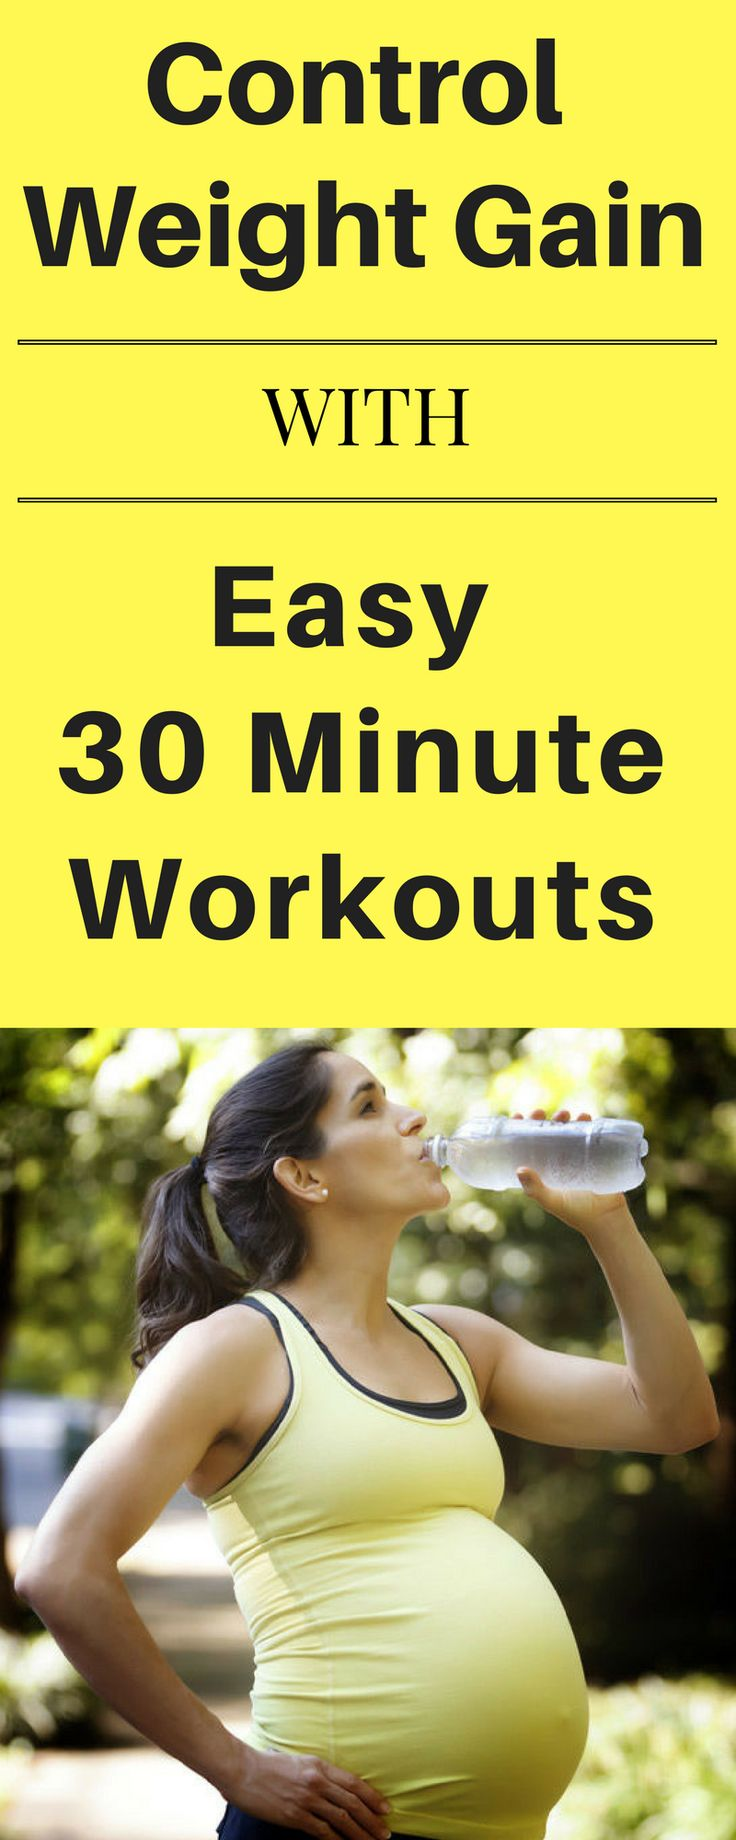 Control weight gain with easy 30 minute workouts.  Home prenatal workouts, no gym required.